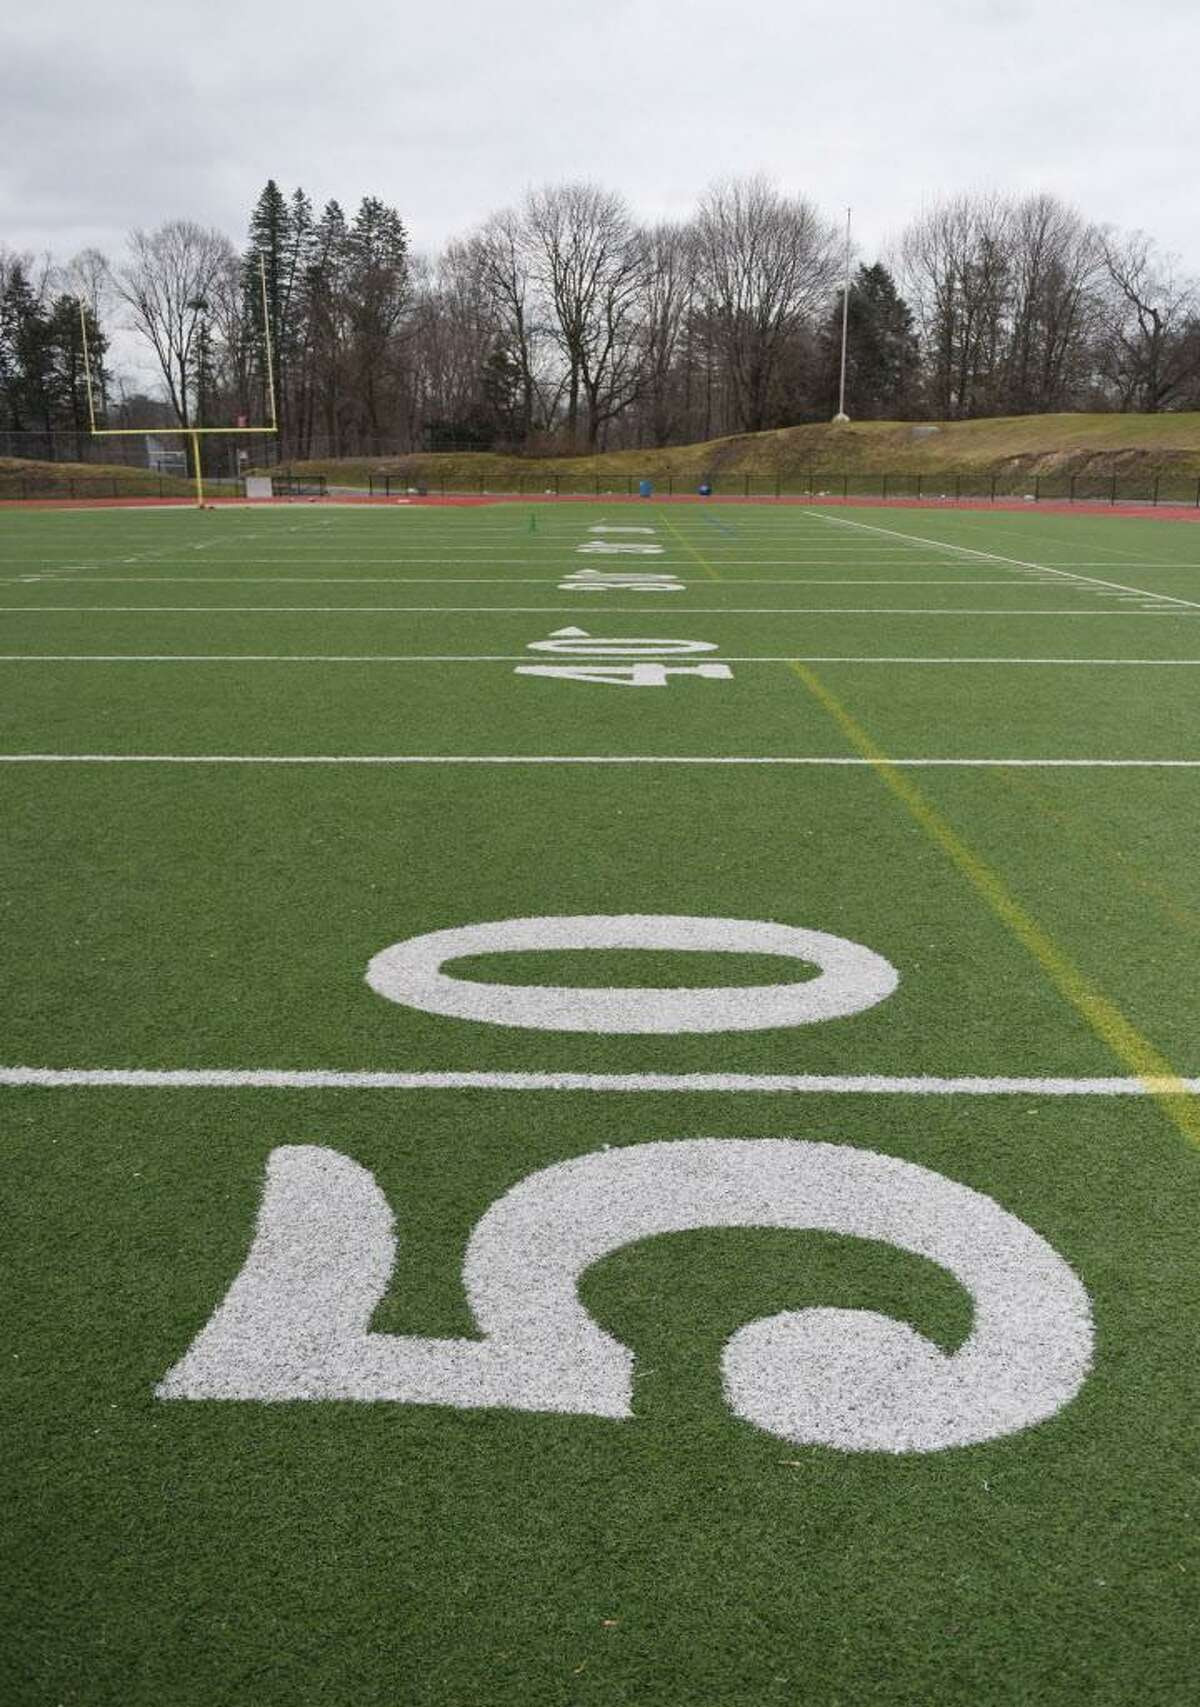 The artificial turf playing surface at Greenwich High School's Cardinals Stadium field in Greenwich, Conn. Wednesday, Feb. 17, 2016. New concerns have risen about artificial turf fields as the district debates installing them on its middle school fields.